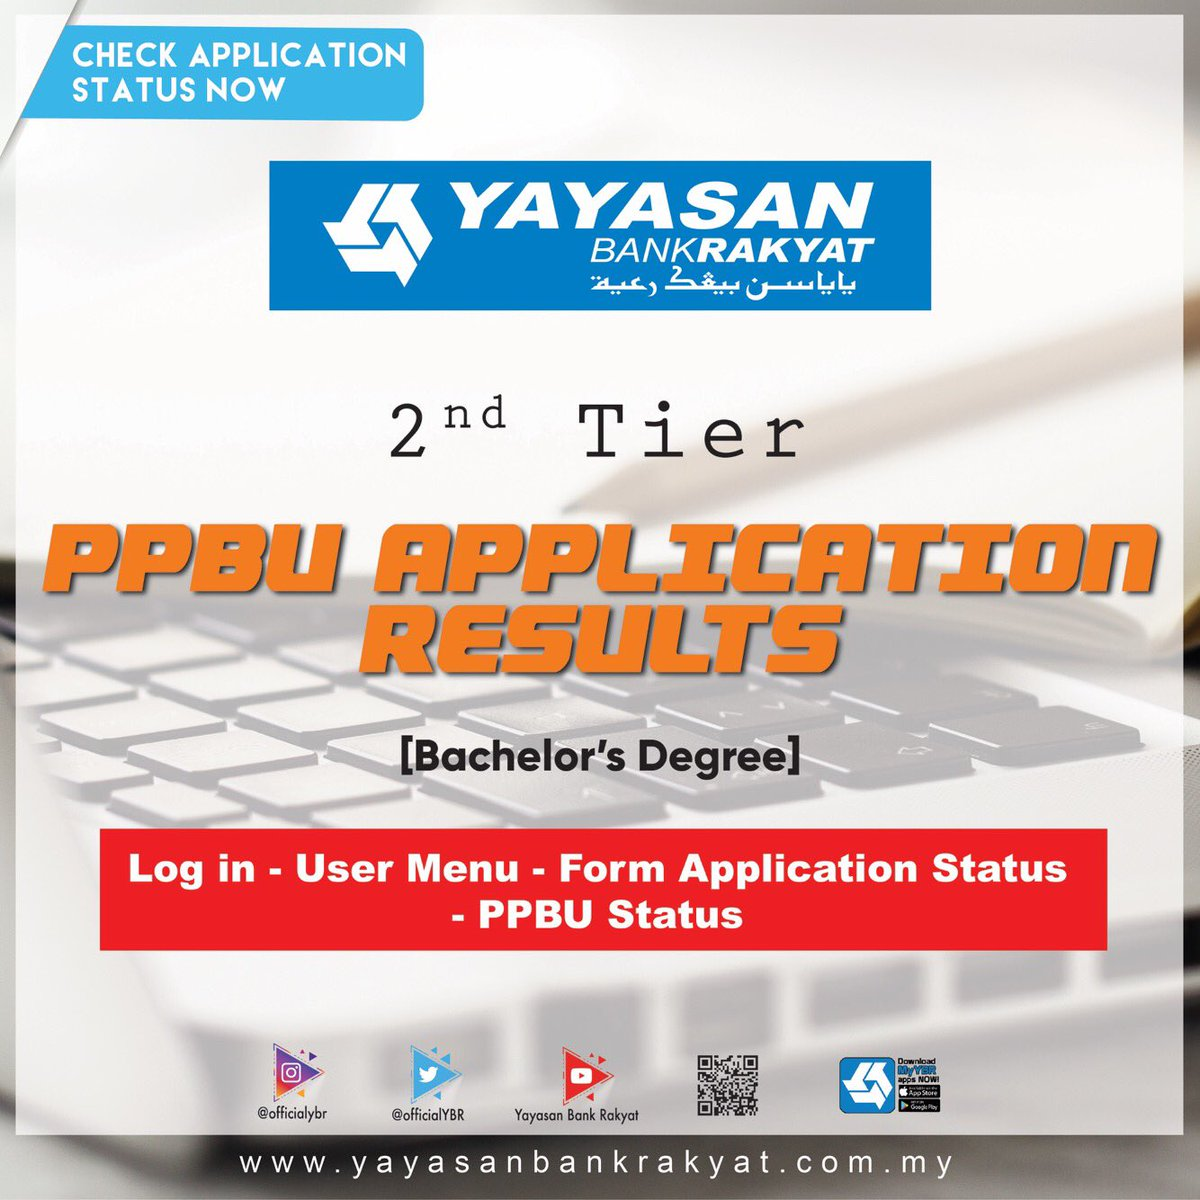 Yayasan Bank Rakyat Twitterissa Attention To All Applicants For Ppbu 2nd Tier You Can Now Check Your Result And Follow The Simple Guideline For Further Clarification Good Luck And All The